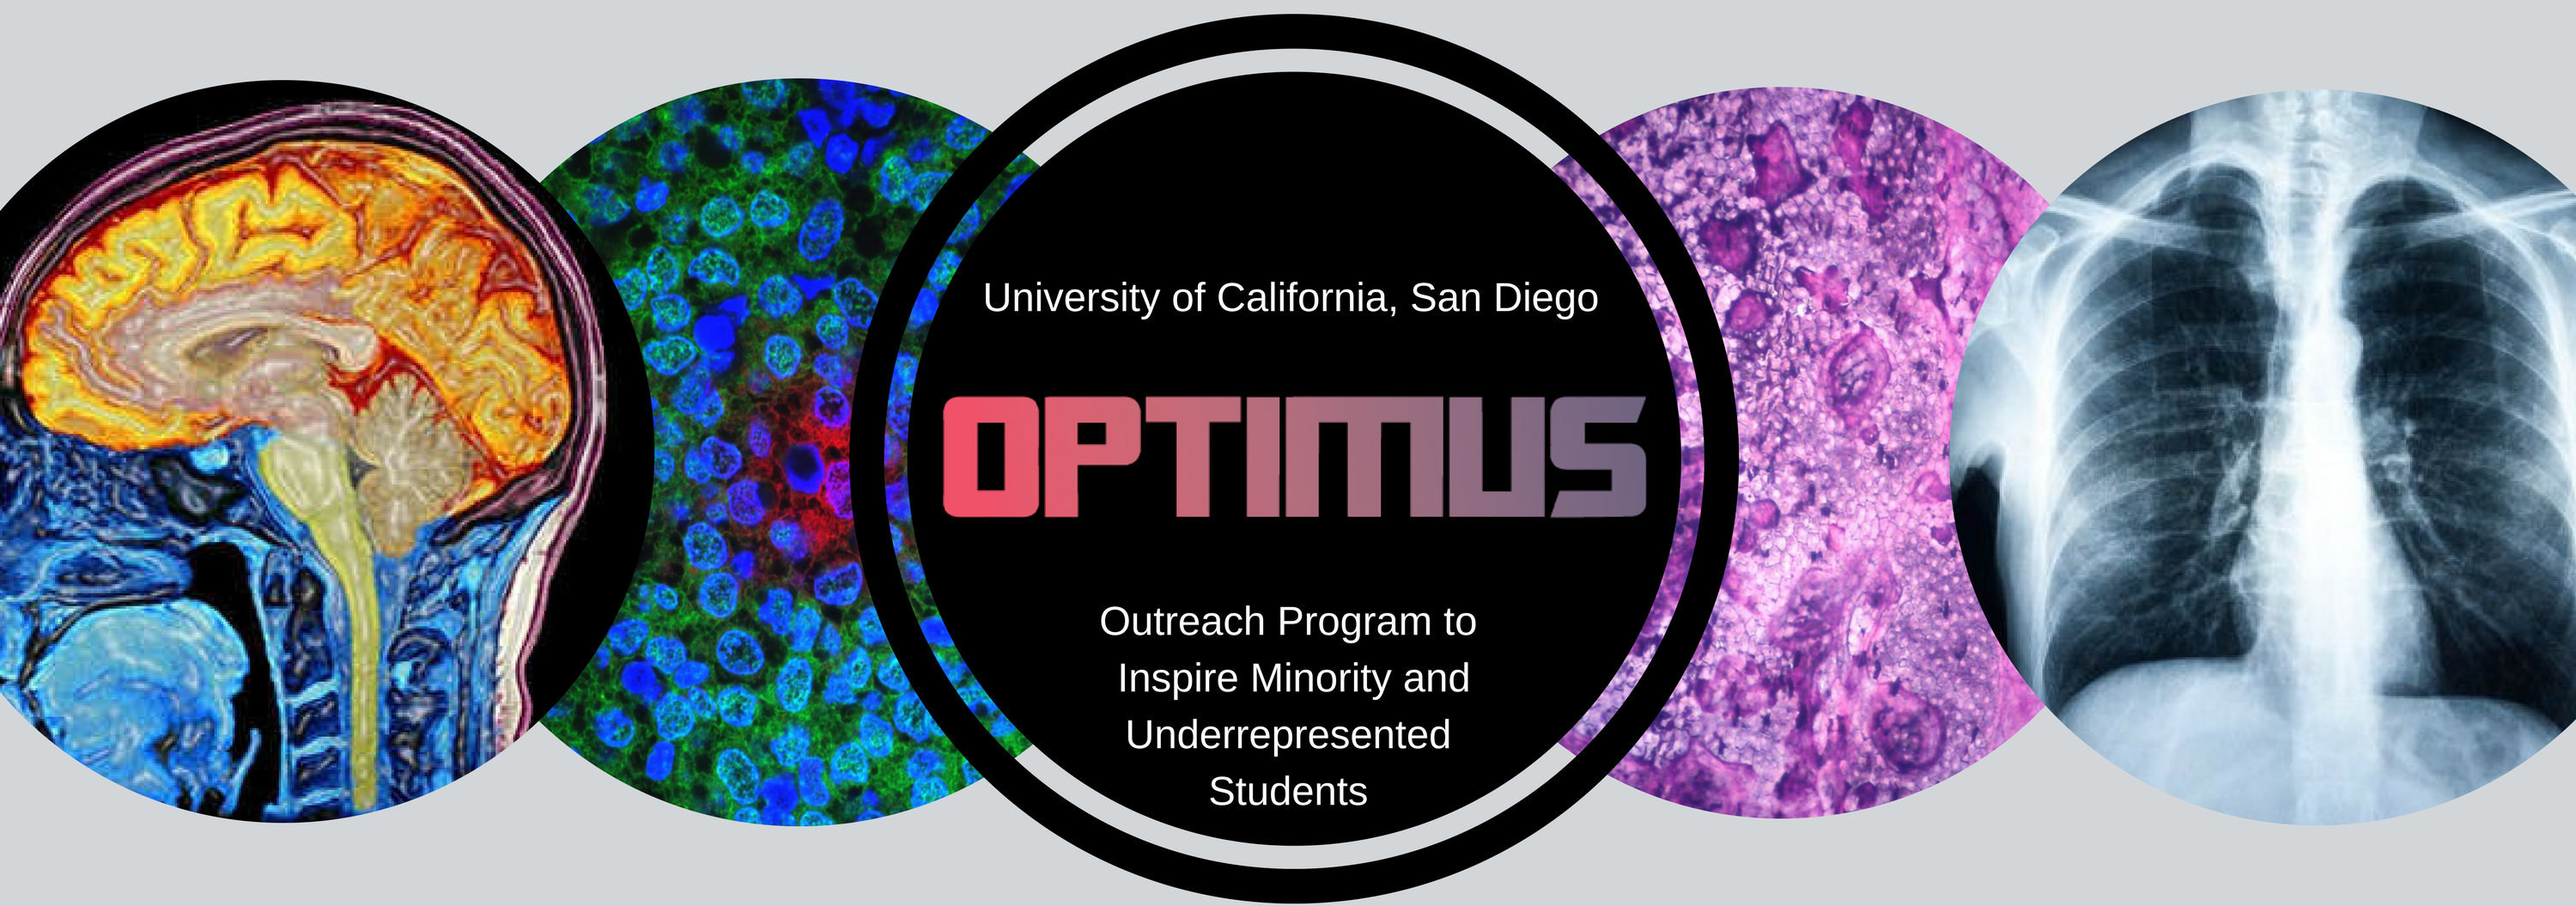 University of California, San Diego<br>OPTIMUS<br>Outreach Program to Inspire Minority and Underrepresented Students